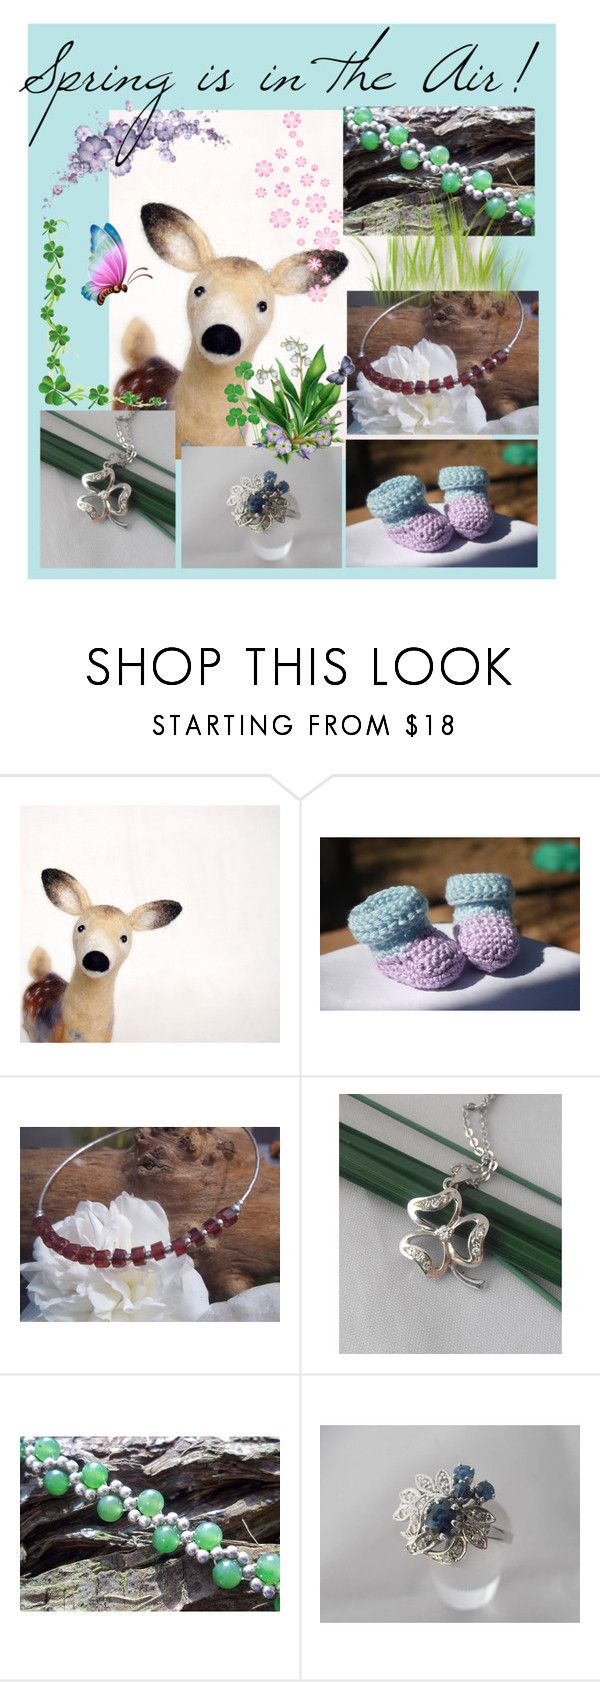 """Spring is in the Air"" by imaginebaby ❤ liked on Polyvore featuring vintage, etsy, jewelry, babybooties and feltdeer"